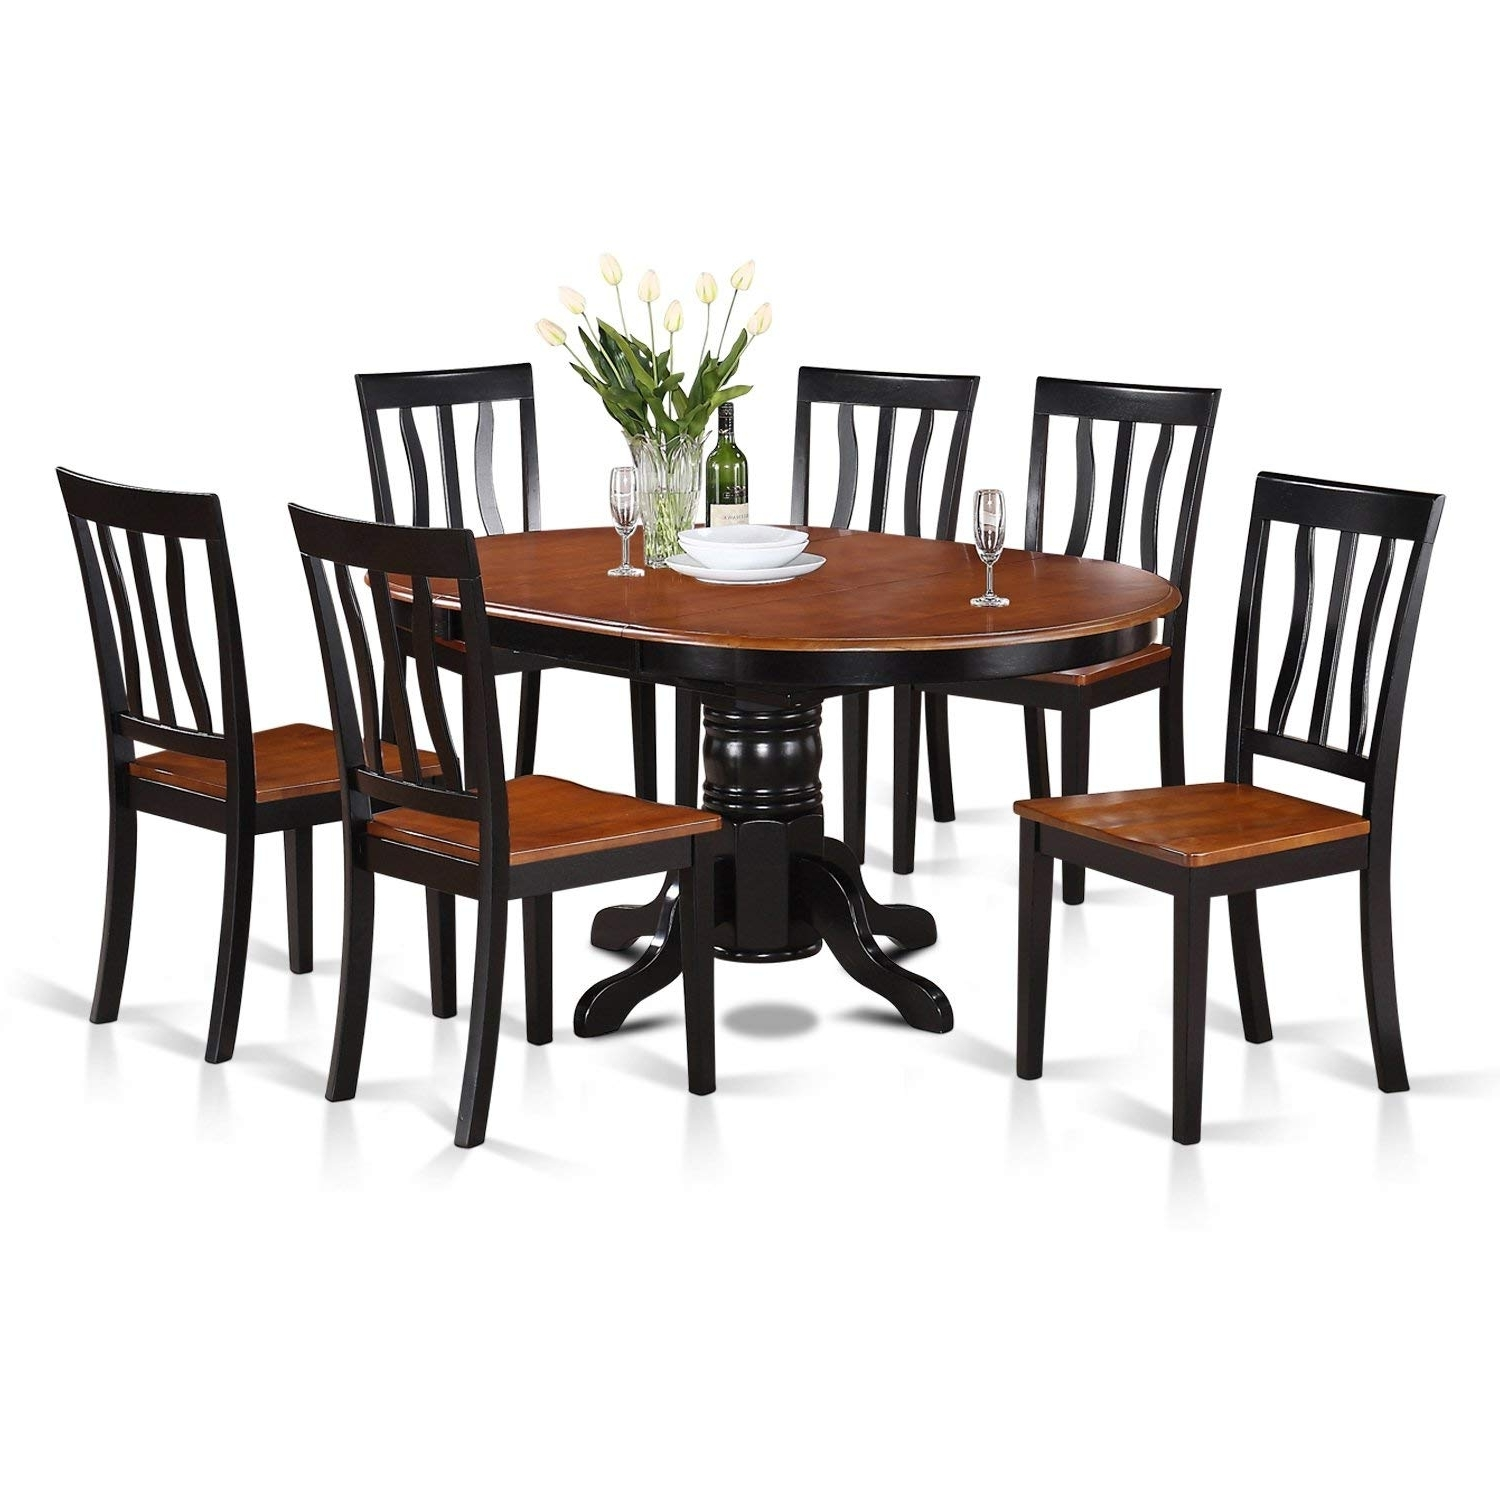 6 Seat Dining Table Sets intended for Current Amazon: East West Furniture Avat7-Blk-W 7-Piece Dining Table Set